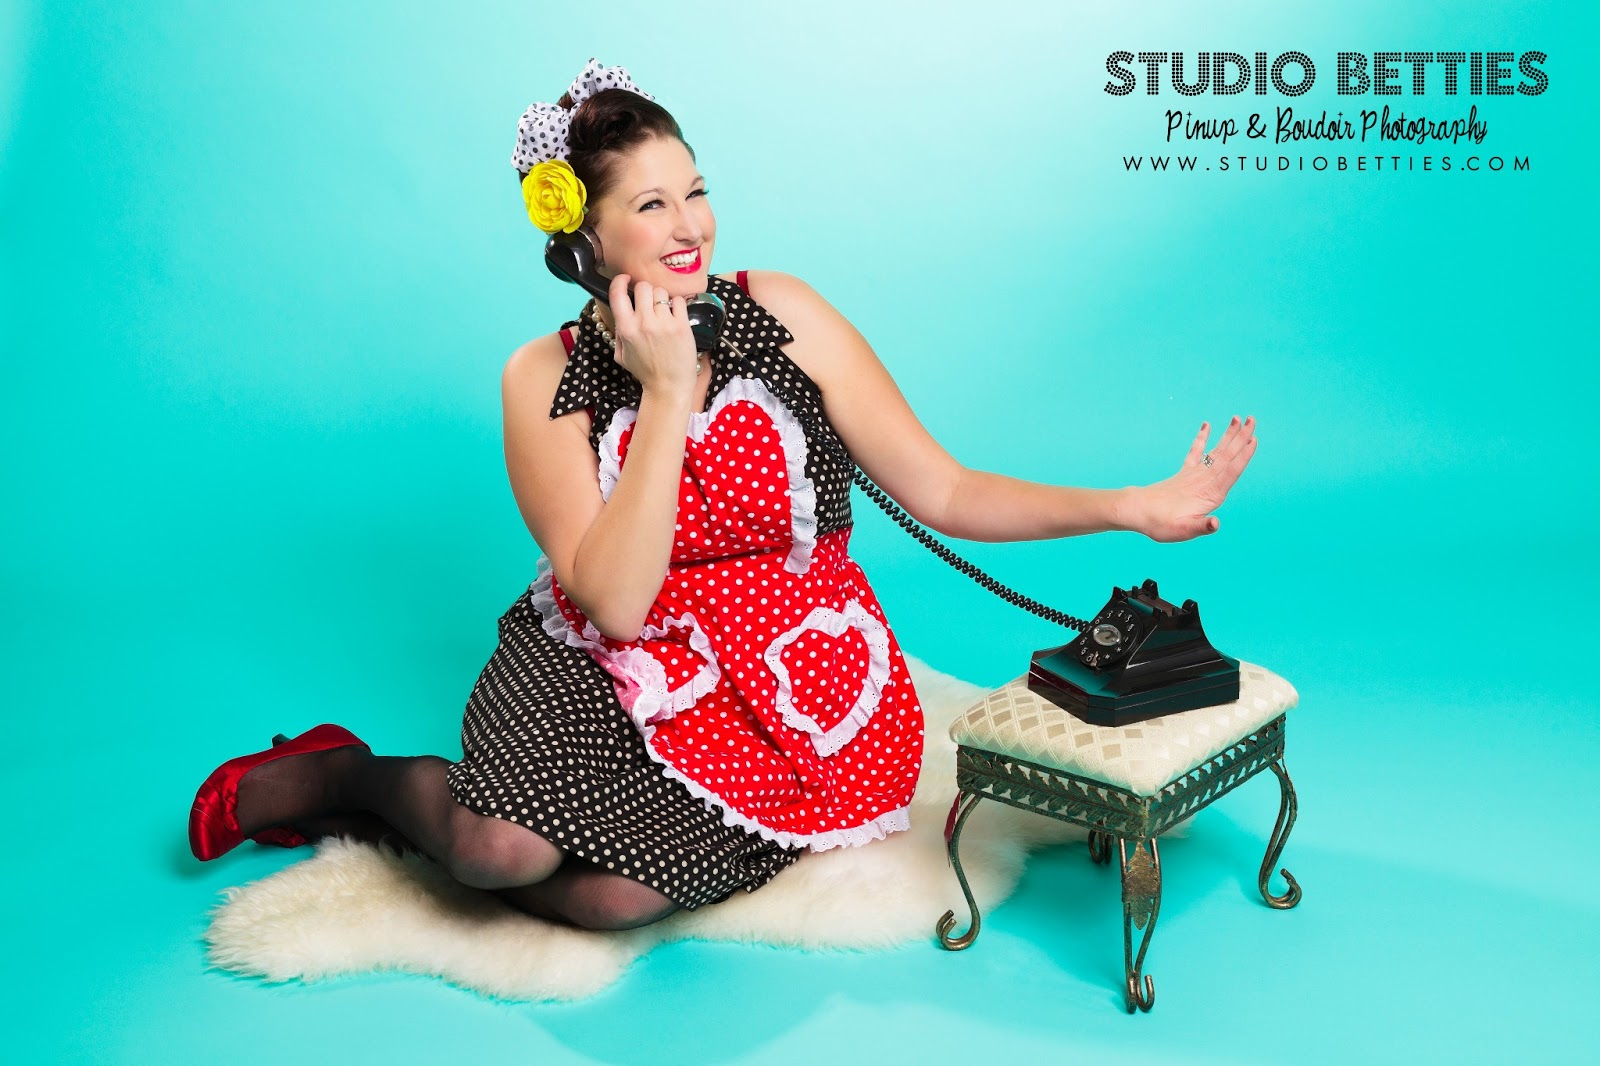 Studio betties pin up boudoir photography Easter at The Virtual Vine